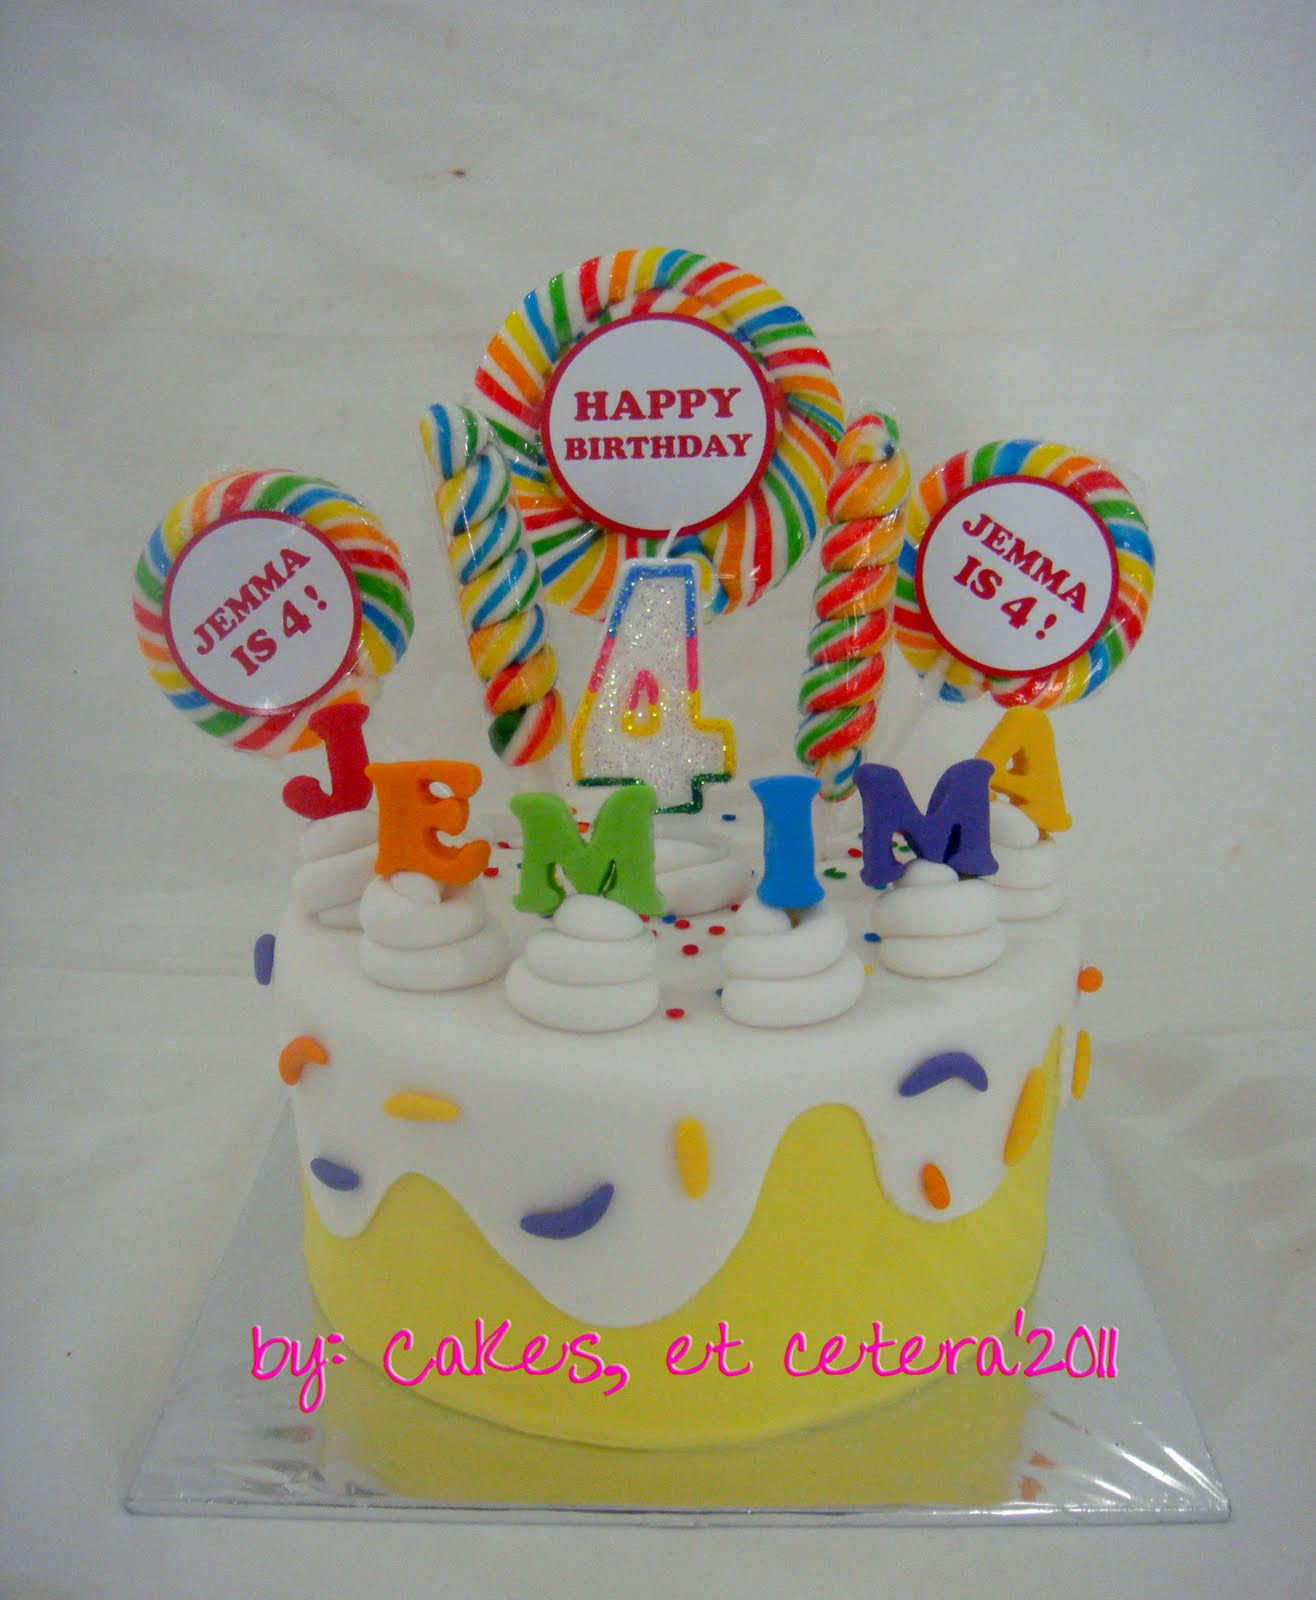 Jemimas 4th birthday cakes